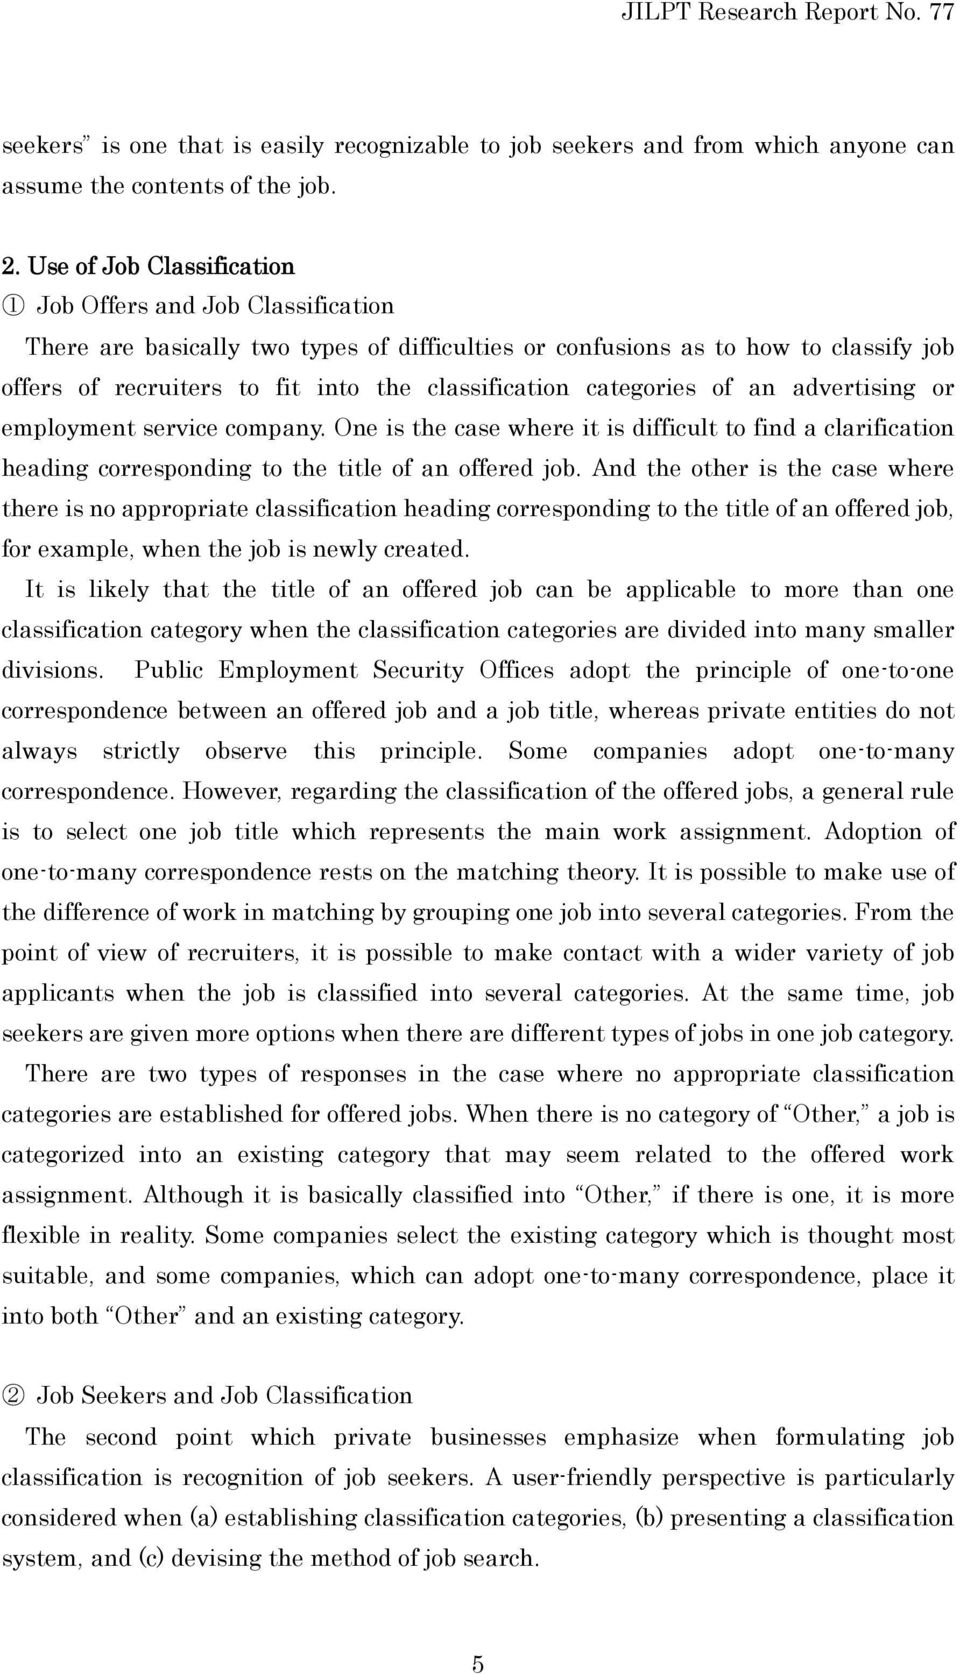 categories of an advertising or employment service company. One is the case where it is difficult to find a clarification heading corresponding to the title of an offered job.